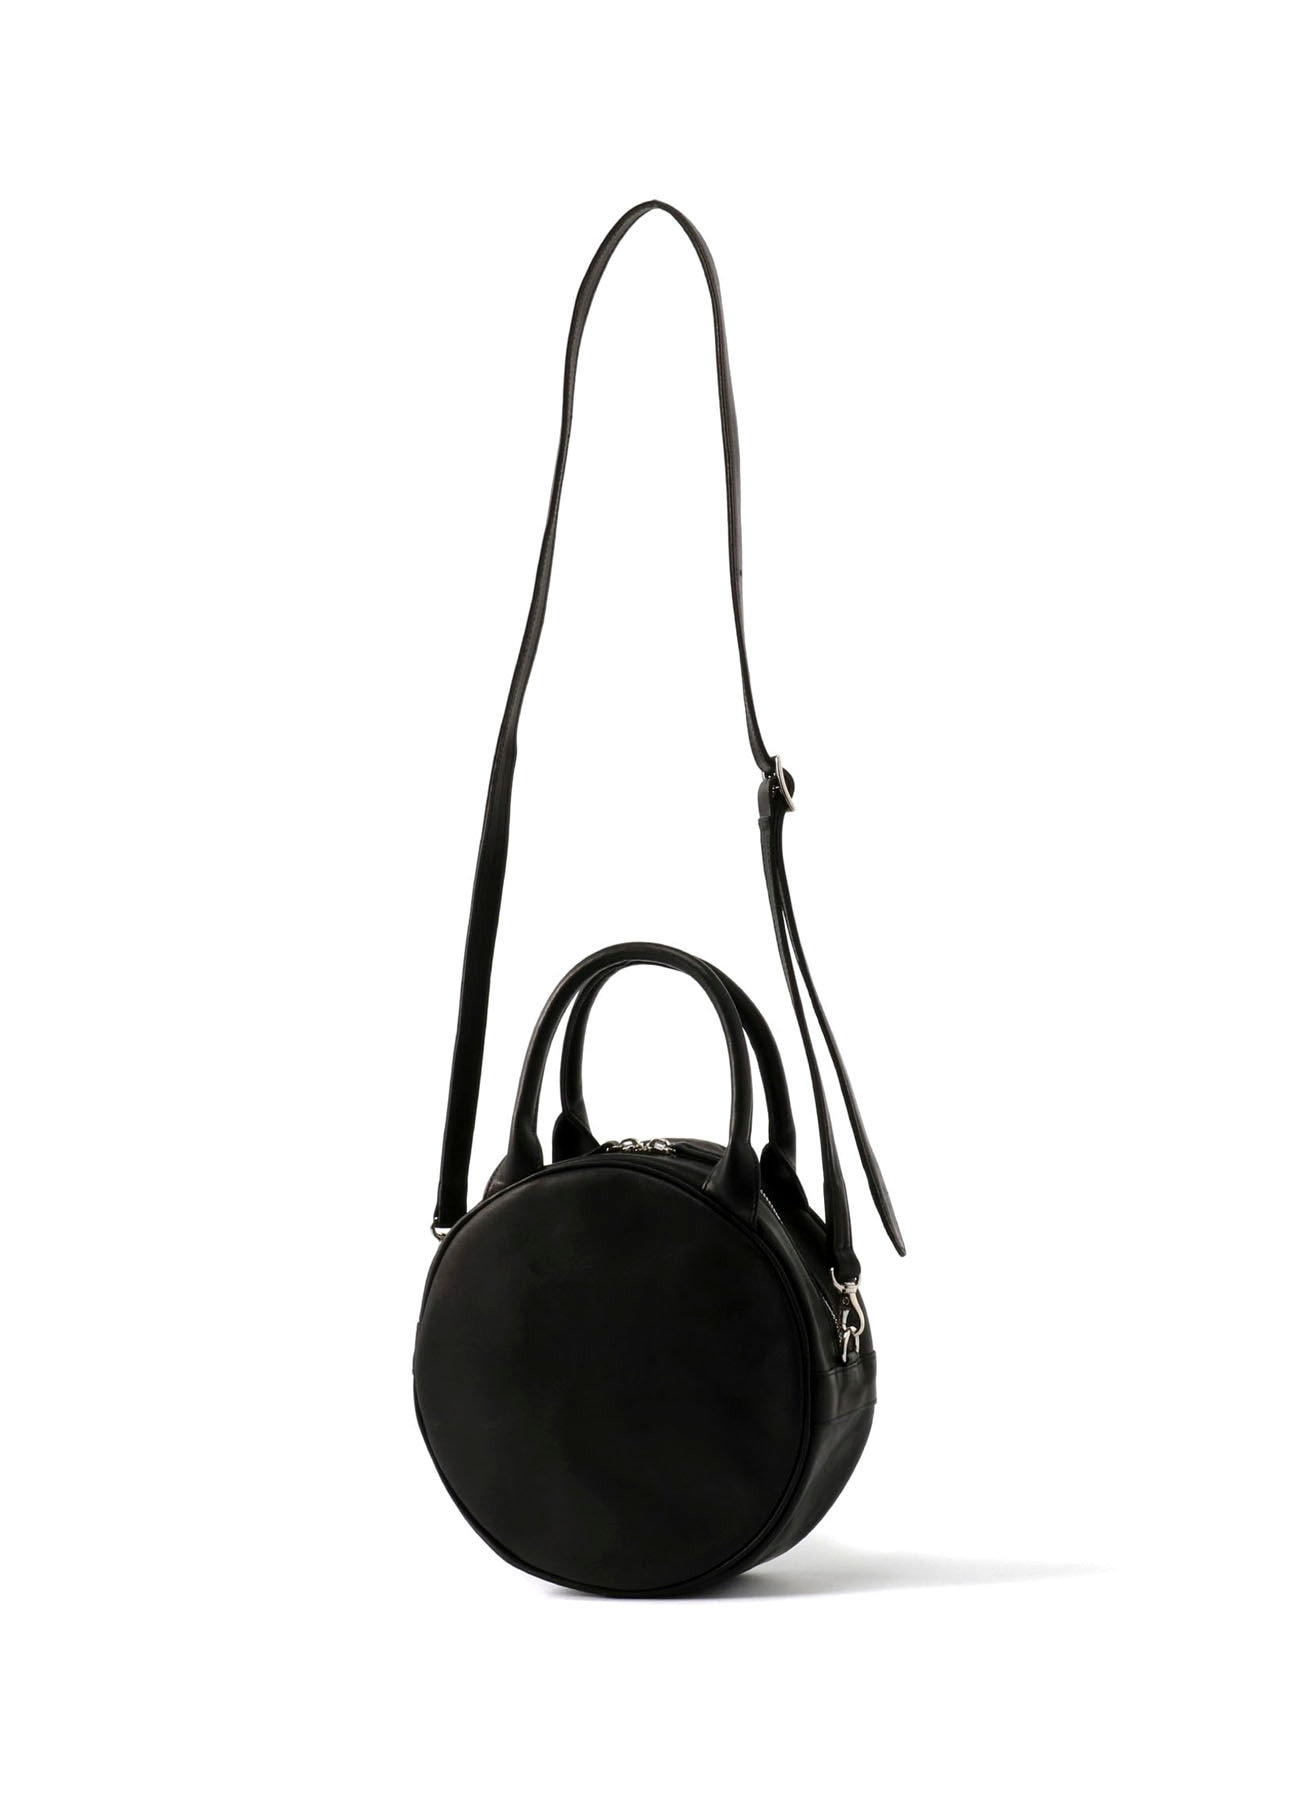 Oil Leather Circle Bag